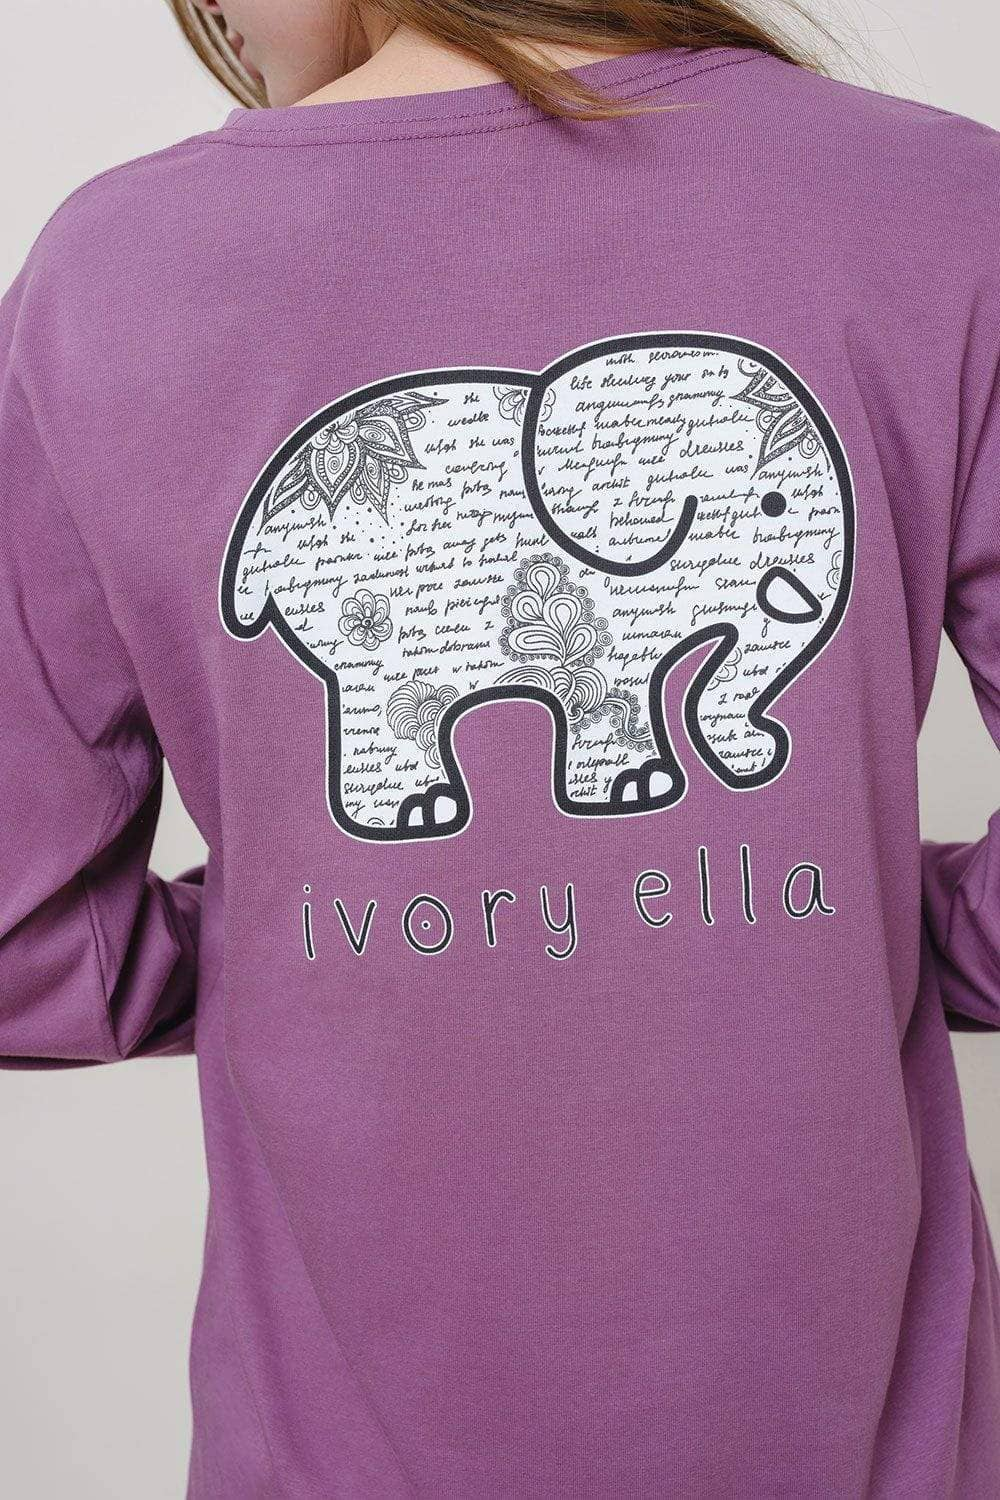 Ivory Ella W Long Sleeve Knits Ella Fit Notes Tee